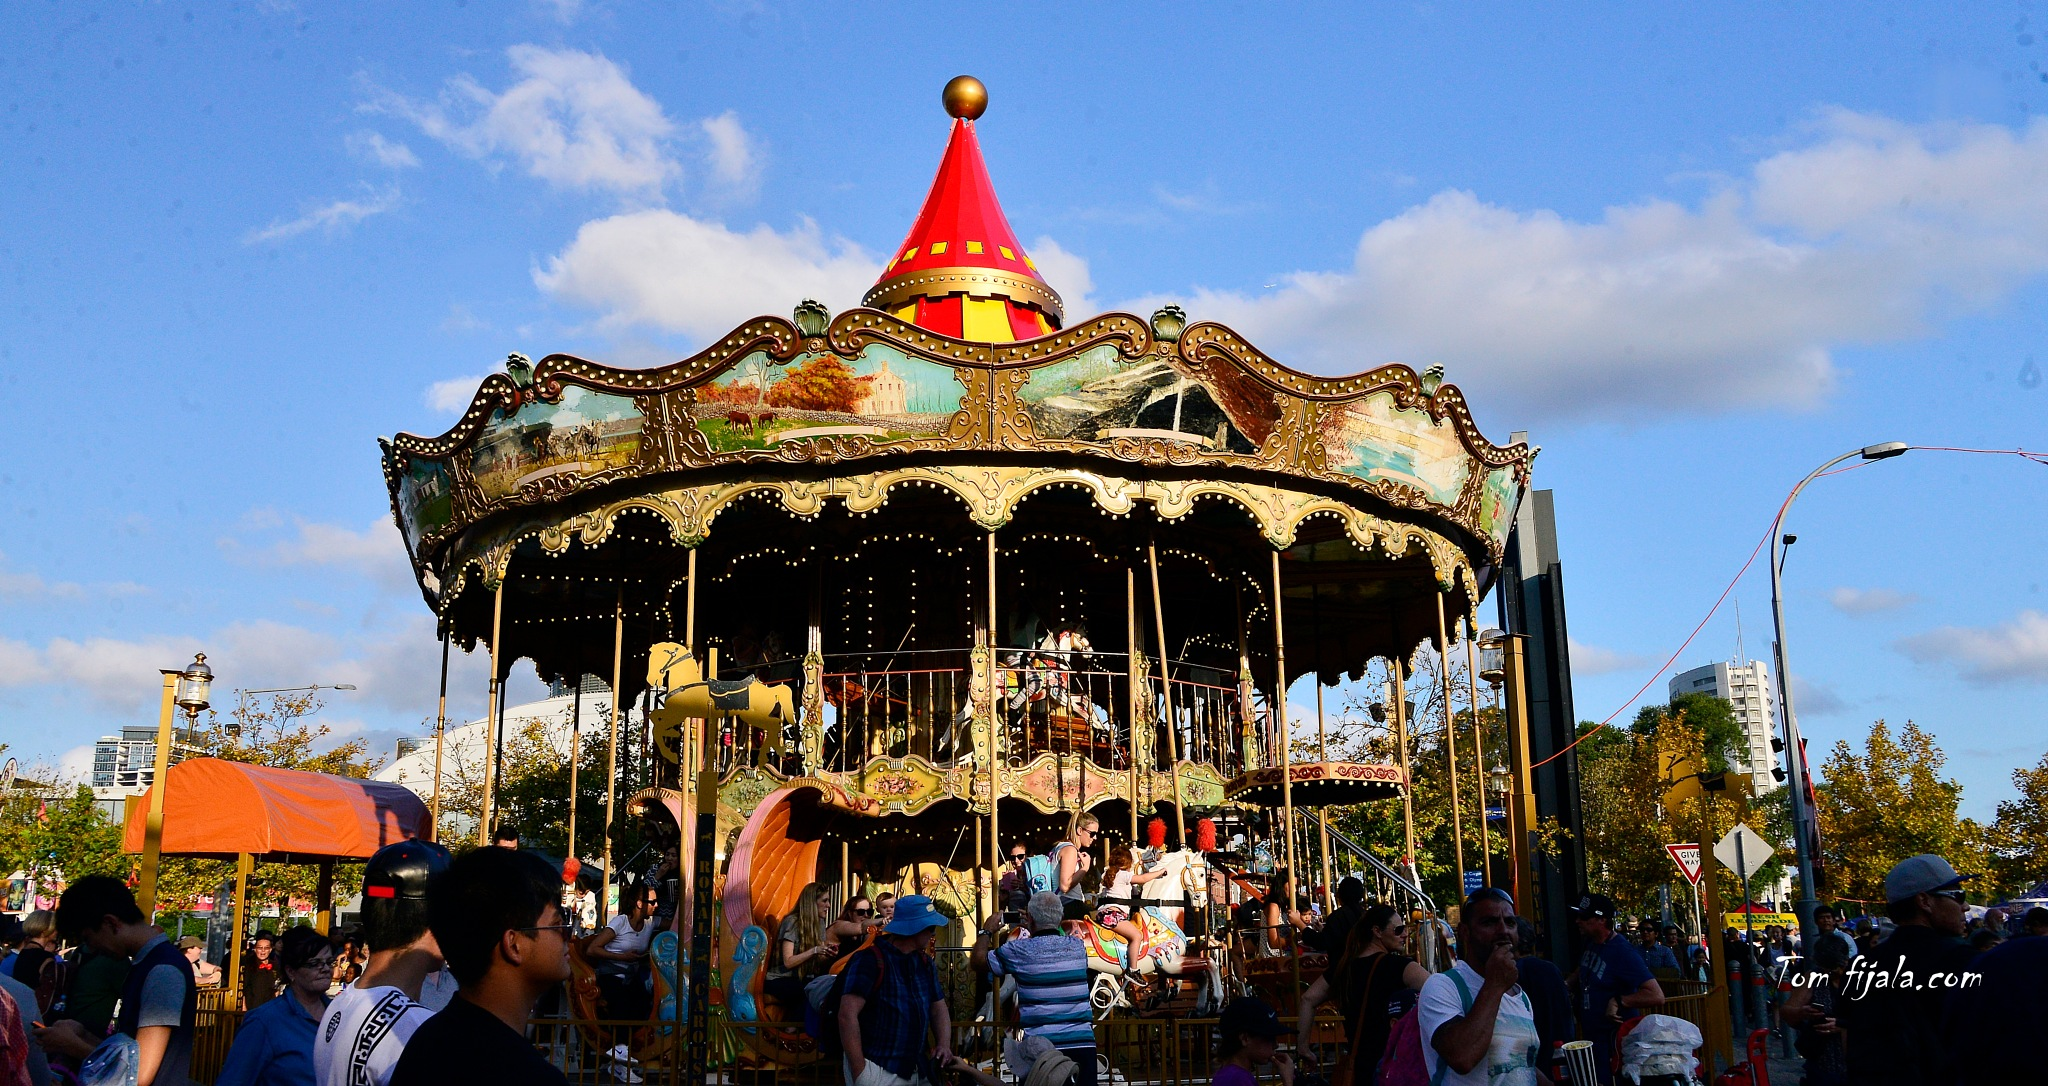 carrousel by Tom Fijala